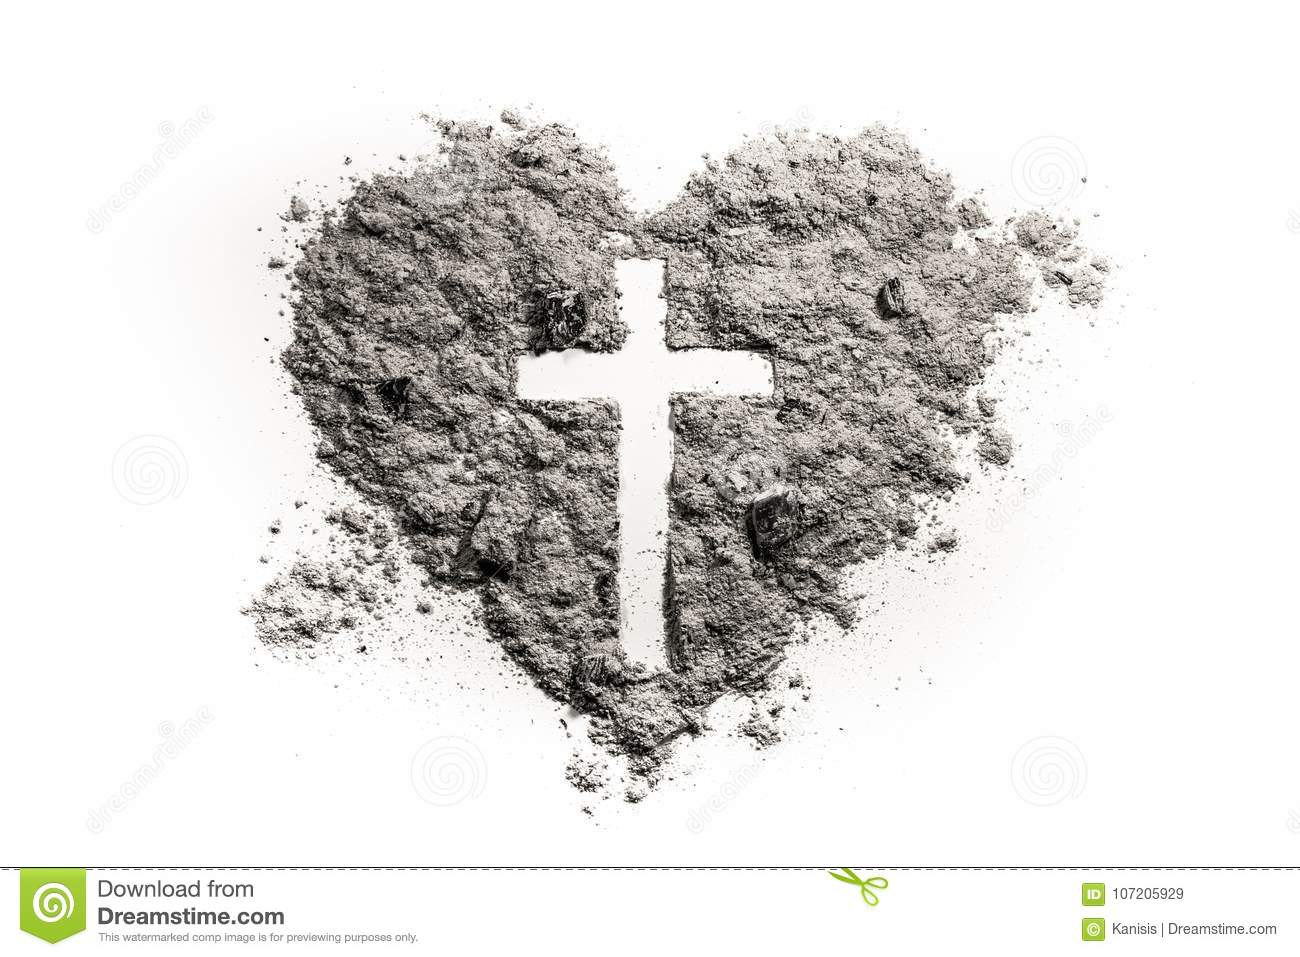 Christian love symbol stock photos 7176 images cross or crucifix in heart symbol made of ash sand or dust as jesus christ biocorpaavc Gallery